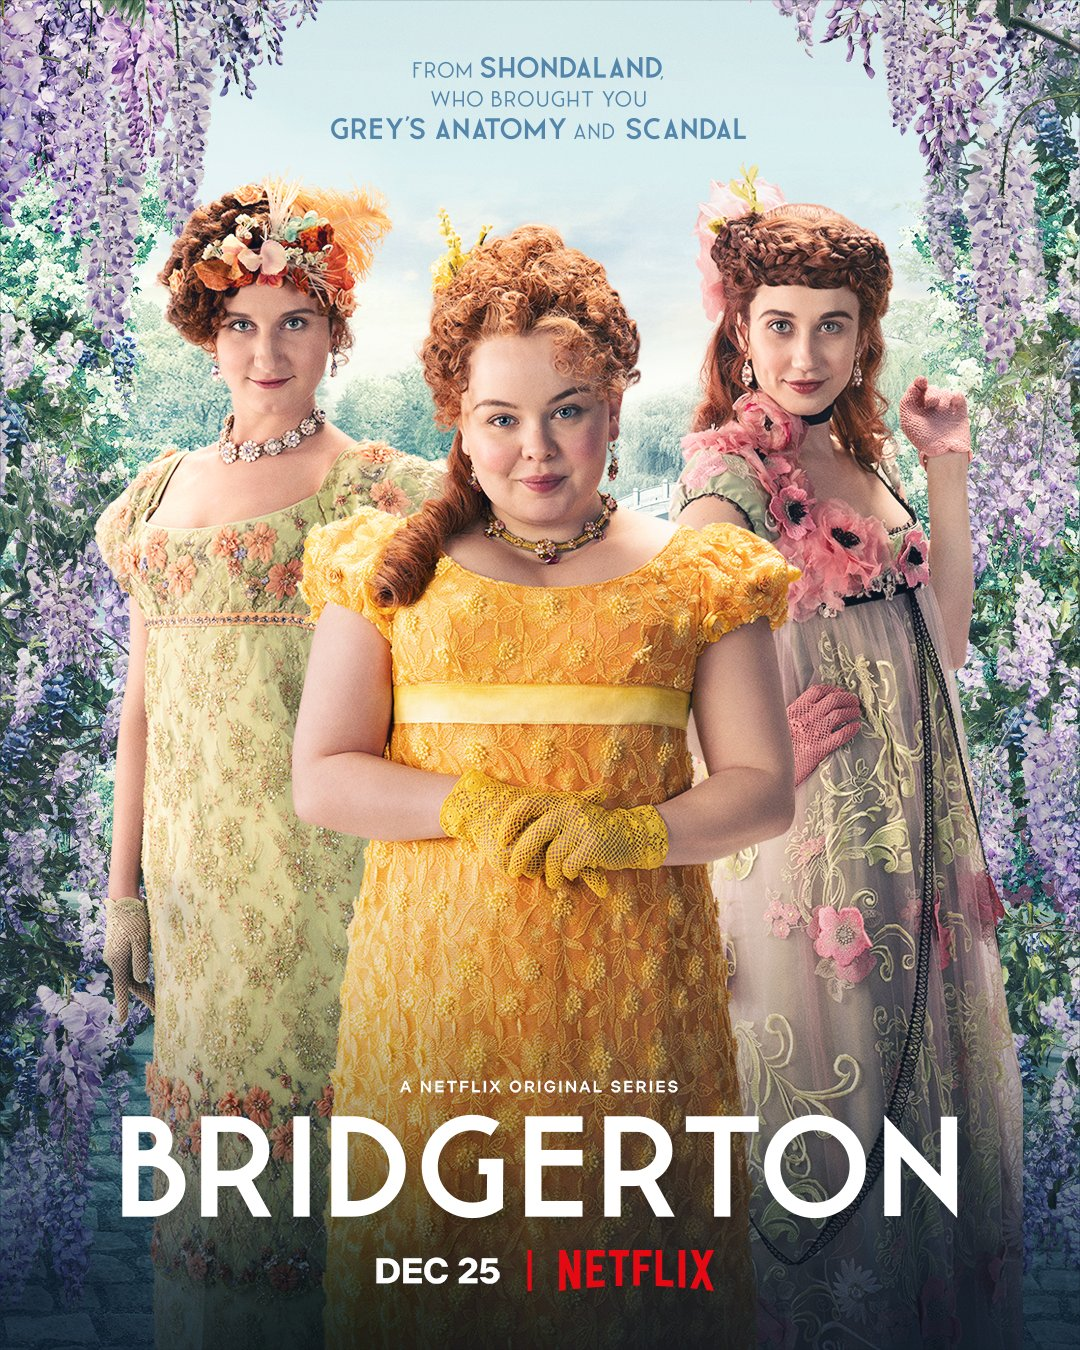 bridgerton-season-1-poster-bridgerton-netflix-series-43618655-1080-1350